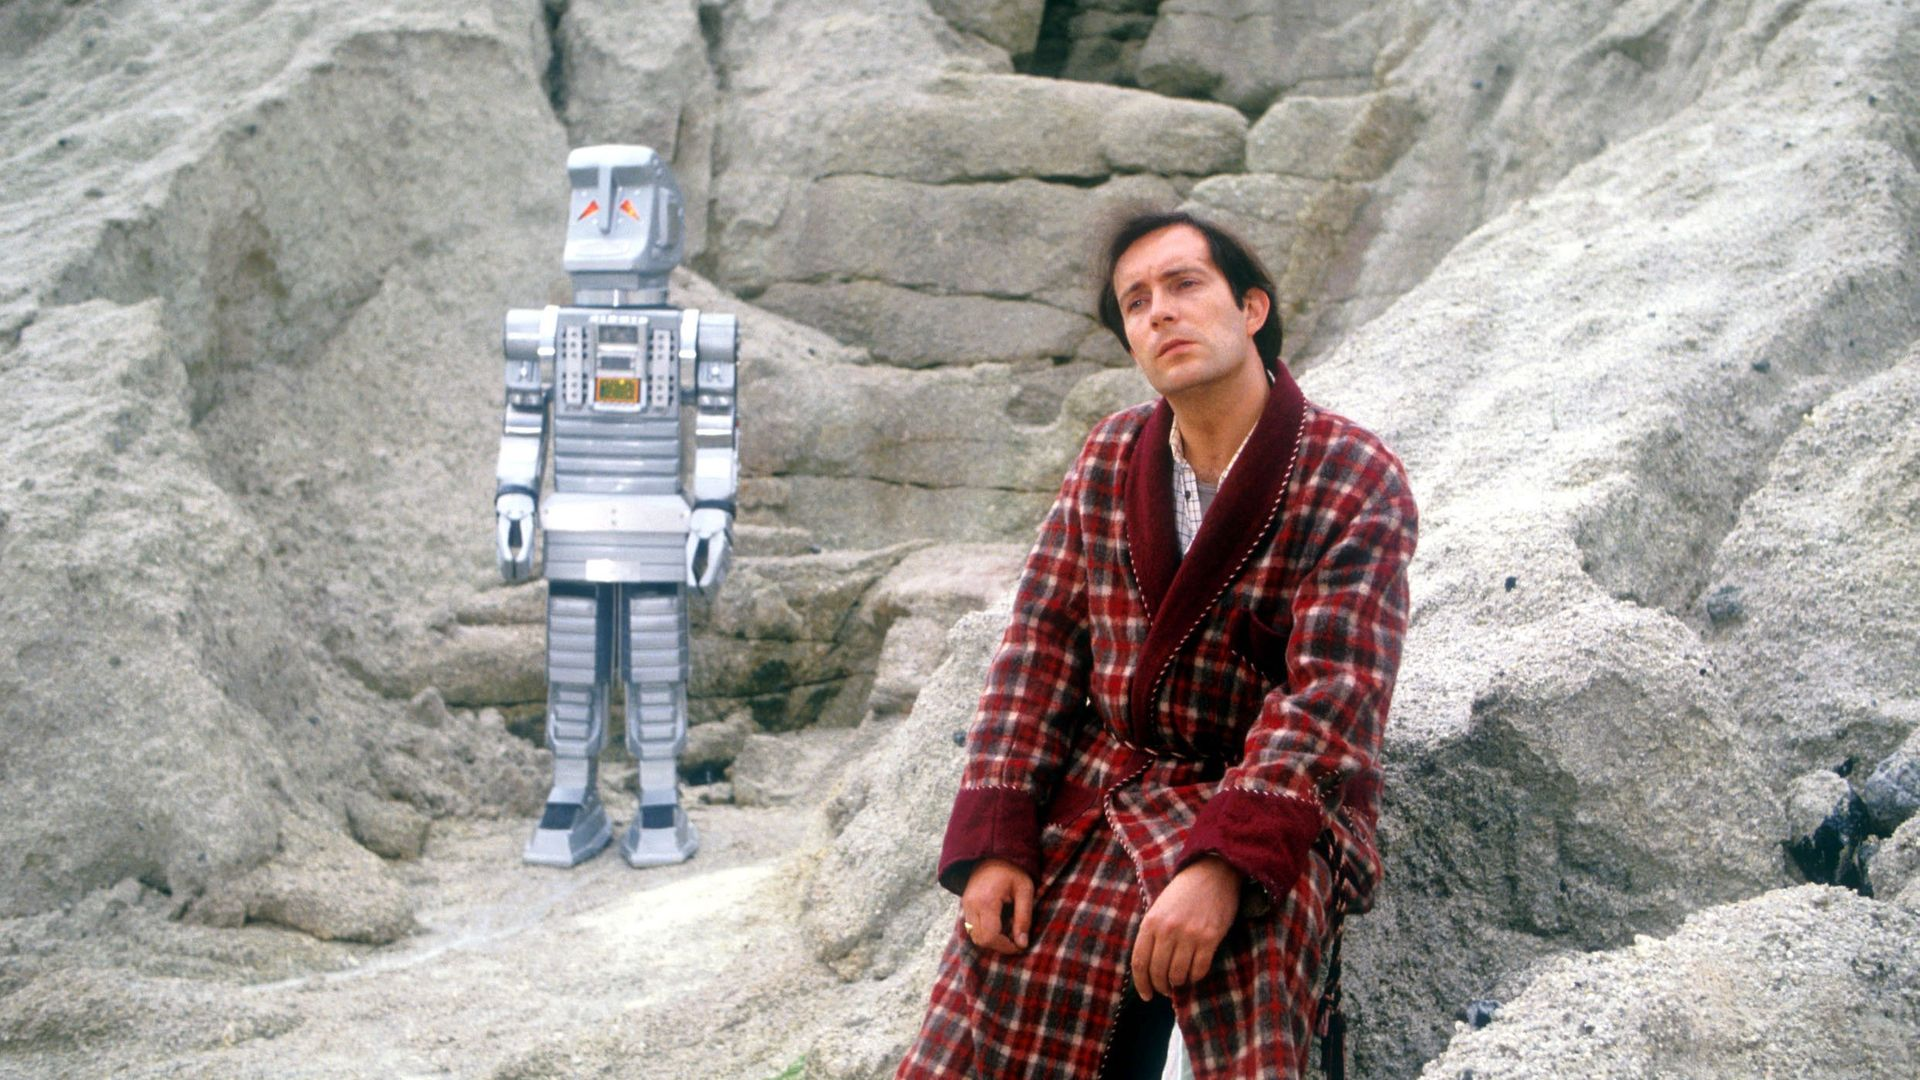 Simon Jones, as Arthur Dent in the BBC's 1981 series The Hitchhiker's Guide to the Galaxy - Credit: BBC